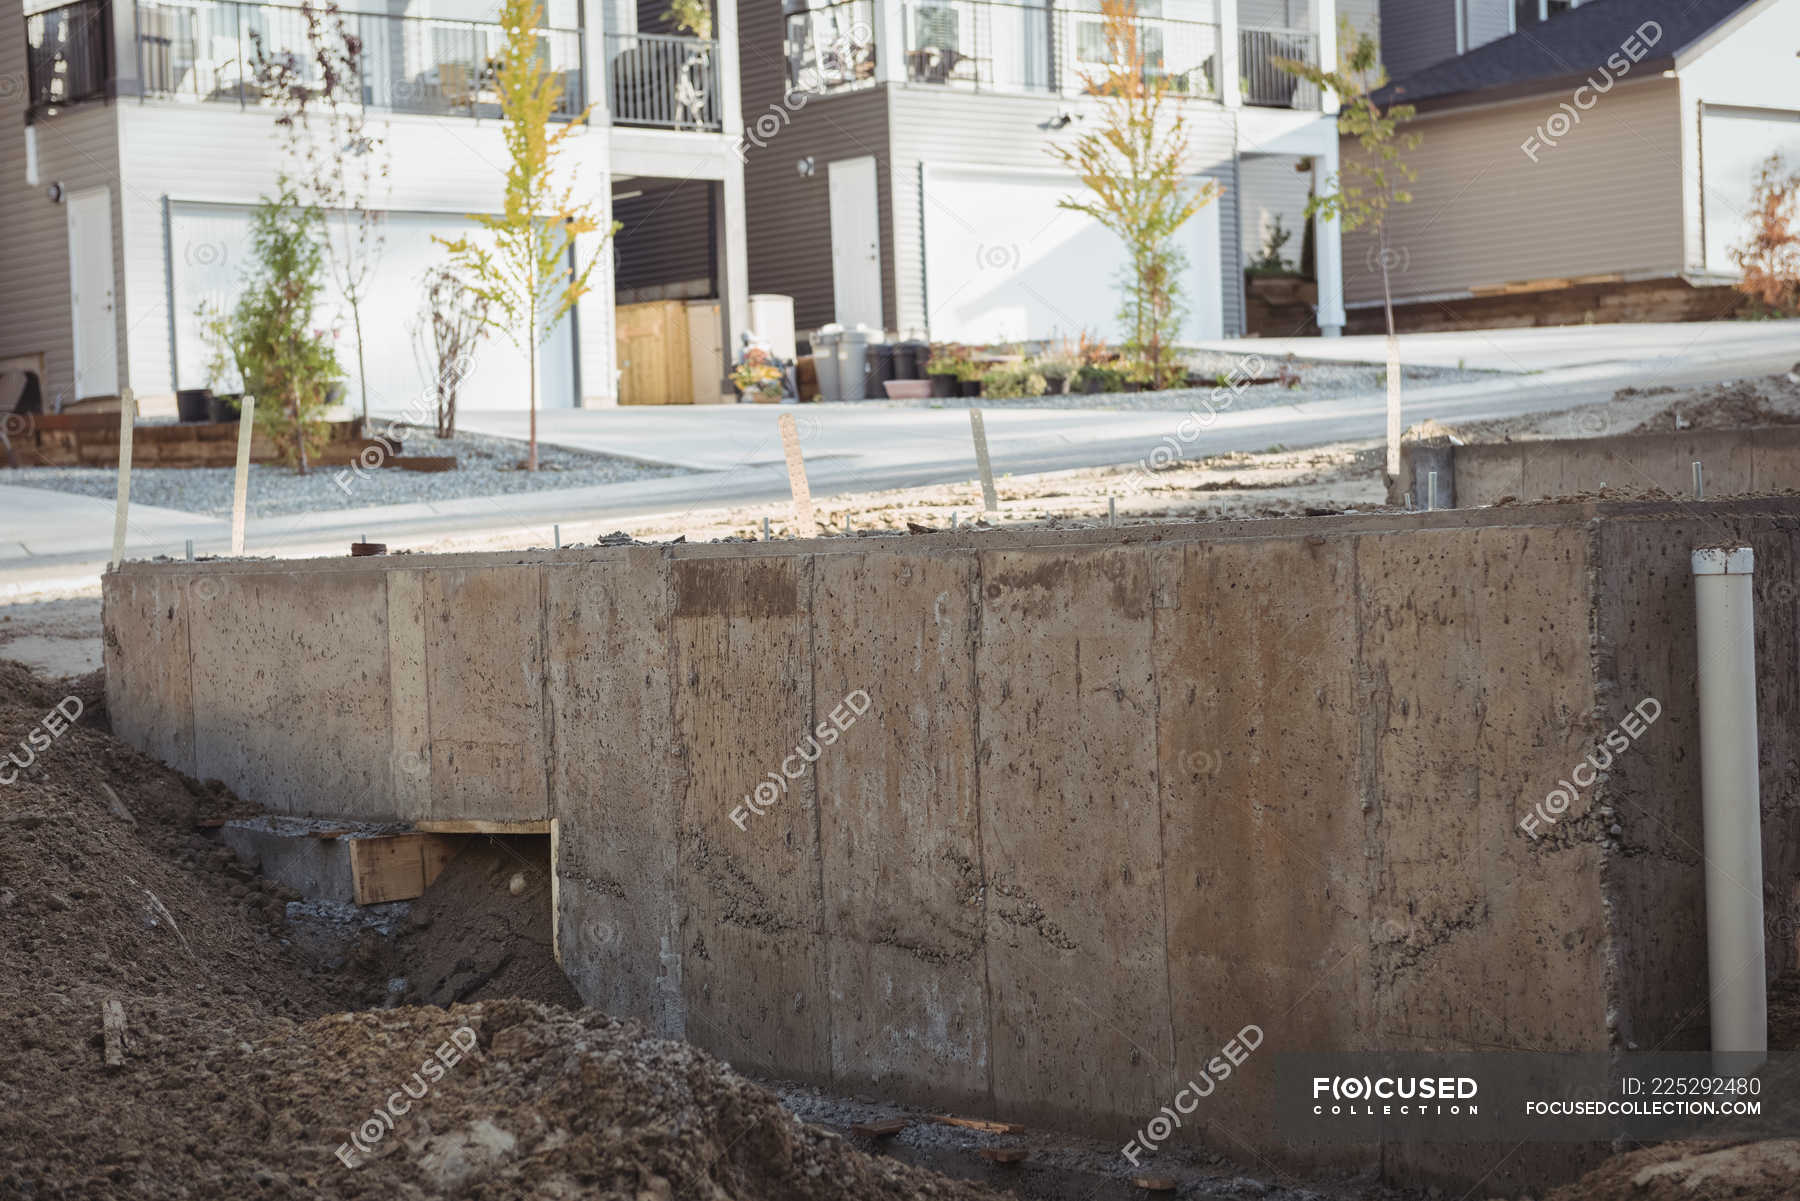 Concrete Foundation With Drainage Pipe At Construction Site Outdoor Renovation Stock Photo 225292480